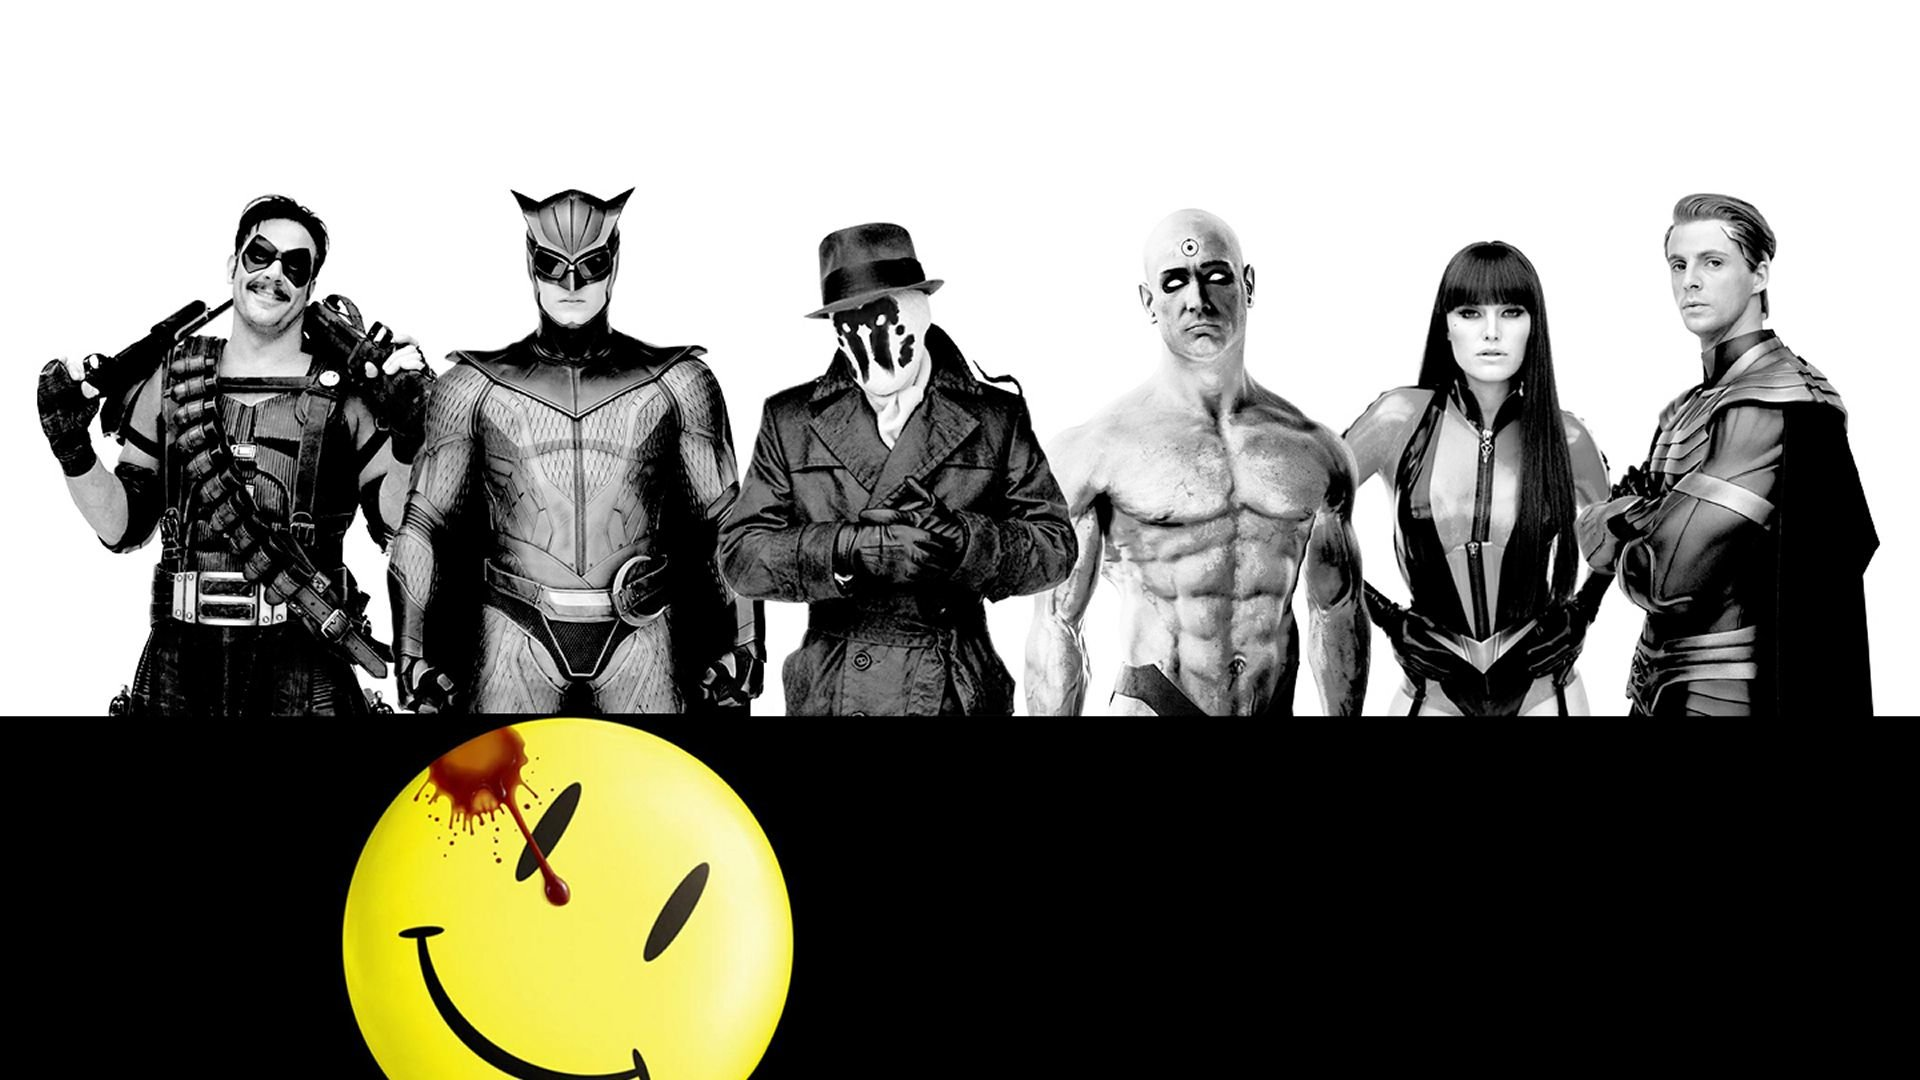 Best Watchmen Movie wallpaper ID:403208 for High Resolution full hd 1080p PC